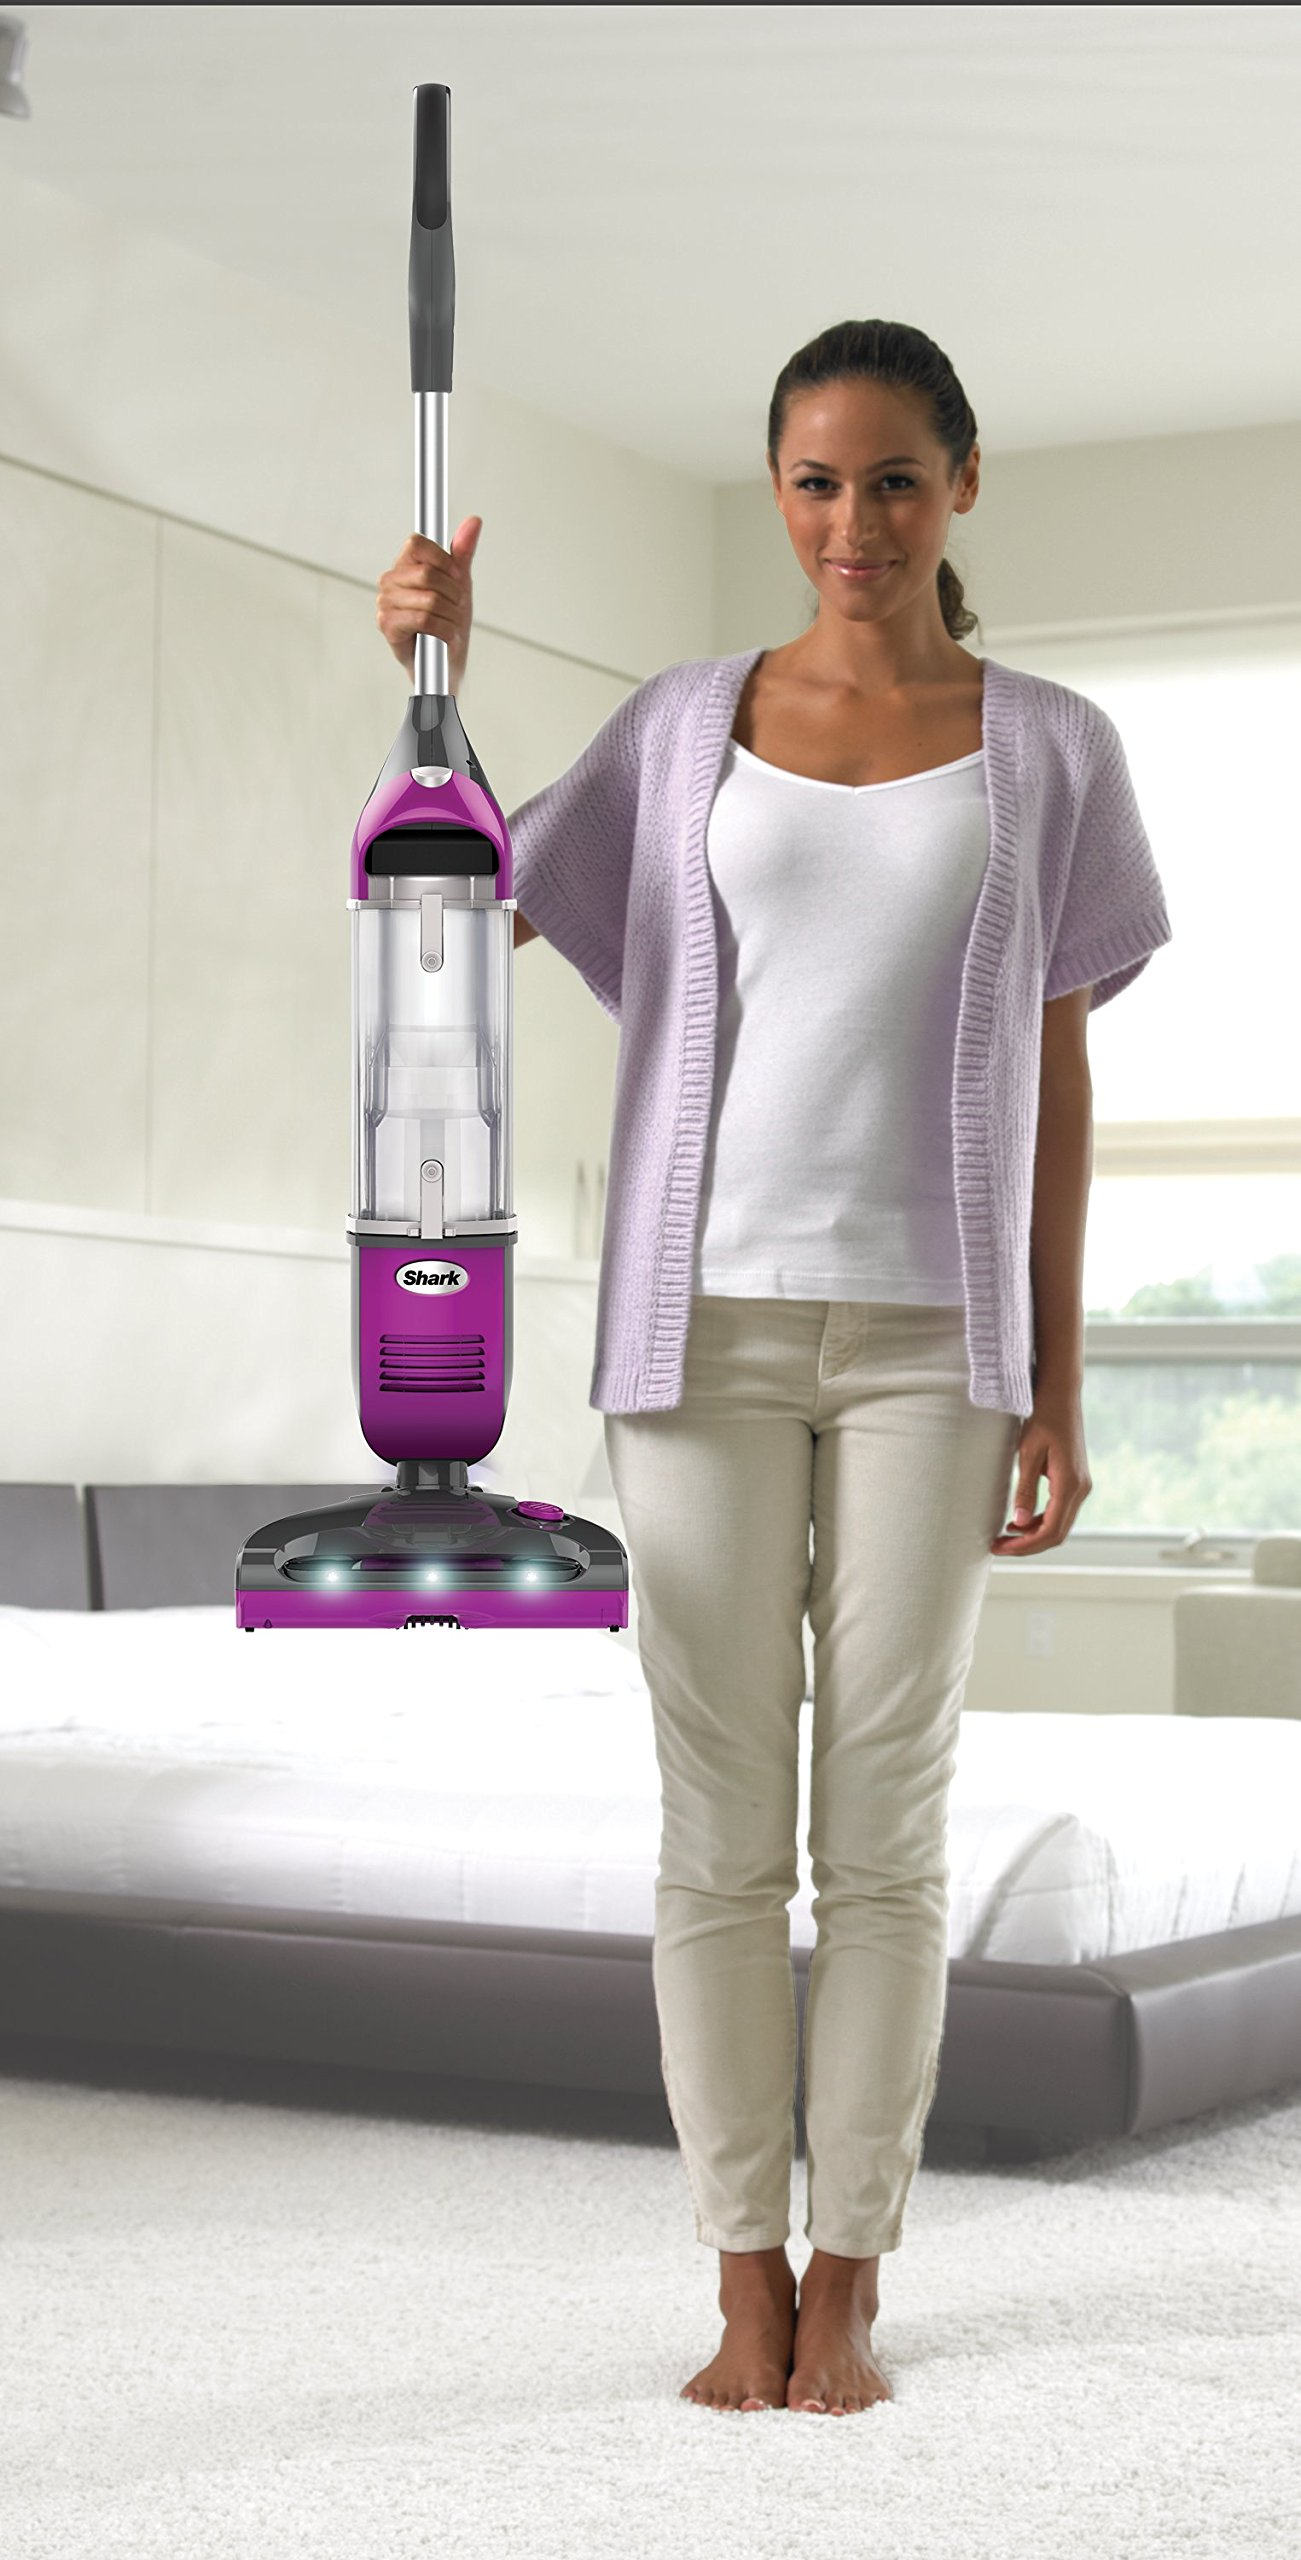 Shark Rotator Freestyle Stick Cordless Vacuum for Carpet, Hard Floor and Pet Hair Pickup with XL Dust Cup and 2-Speed Brushroll (SV1112), Fuchsia by SharkNinja (Image #5)